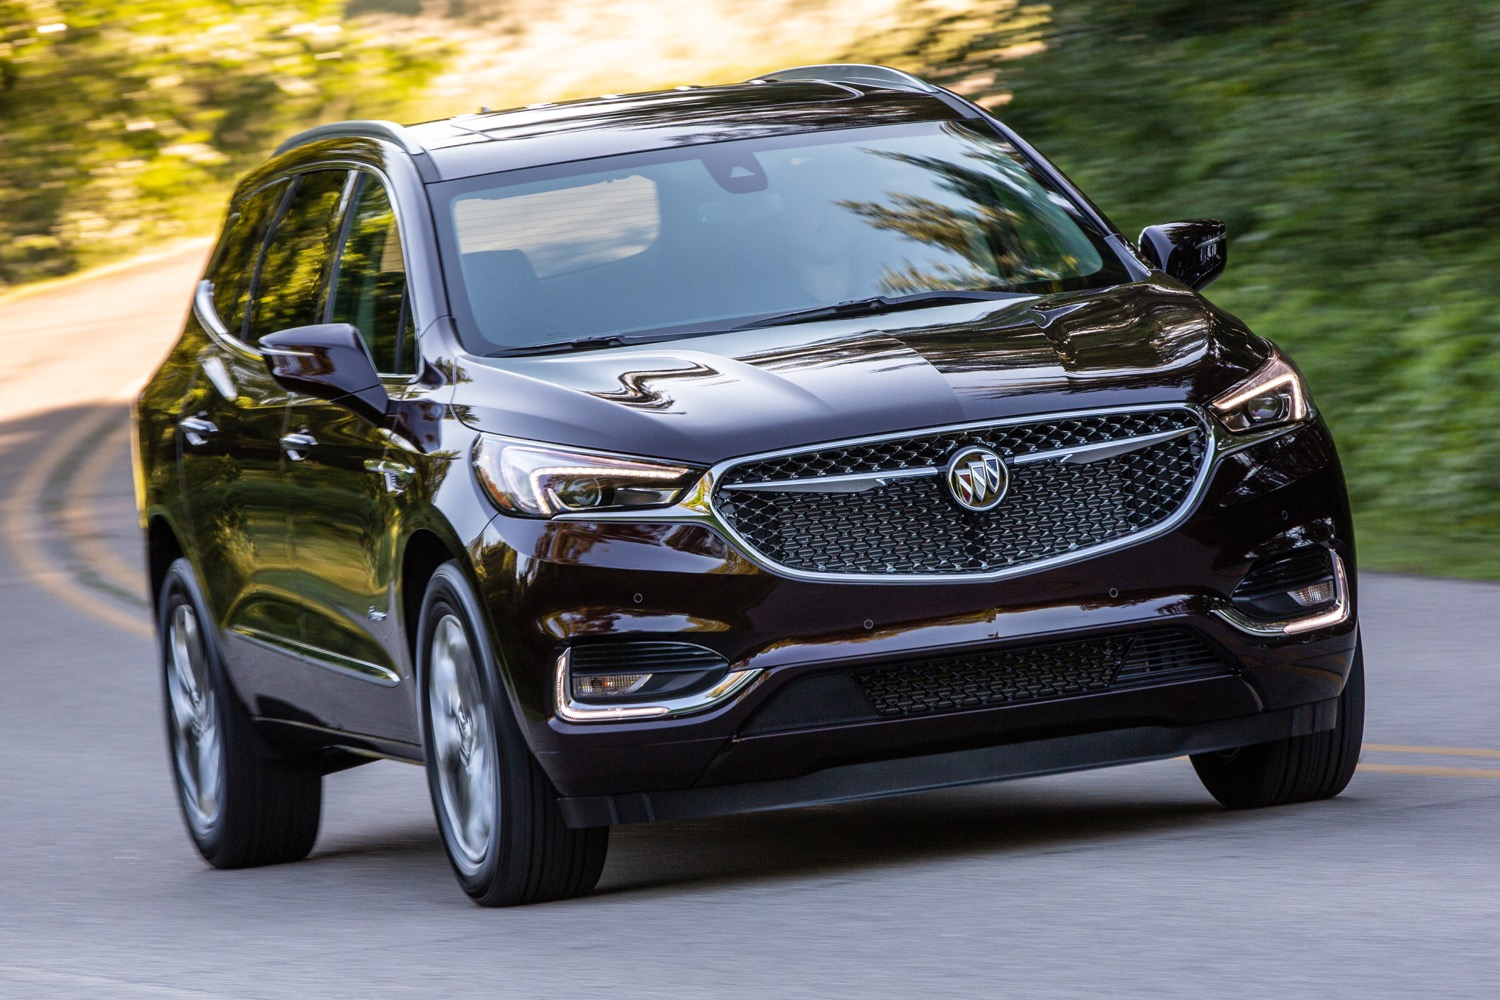 Buick Enclave Discount Totals $4,750 In February 2020 | Gm 2022 Buick Enclave Avenir Awd Review, Accessories, Build